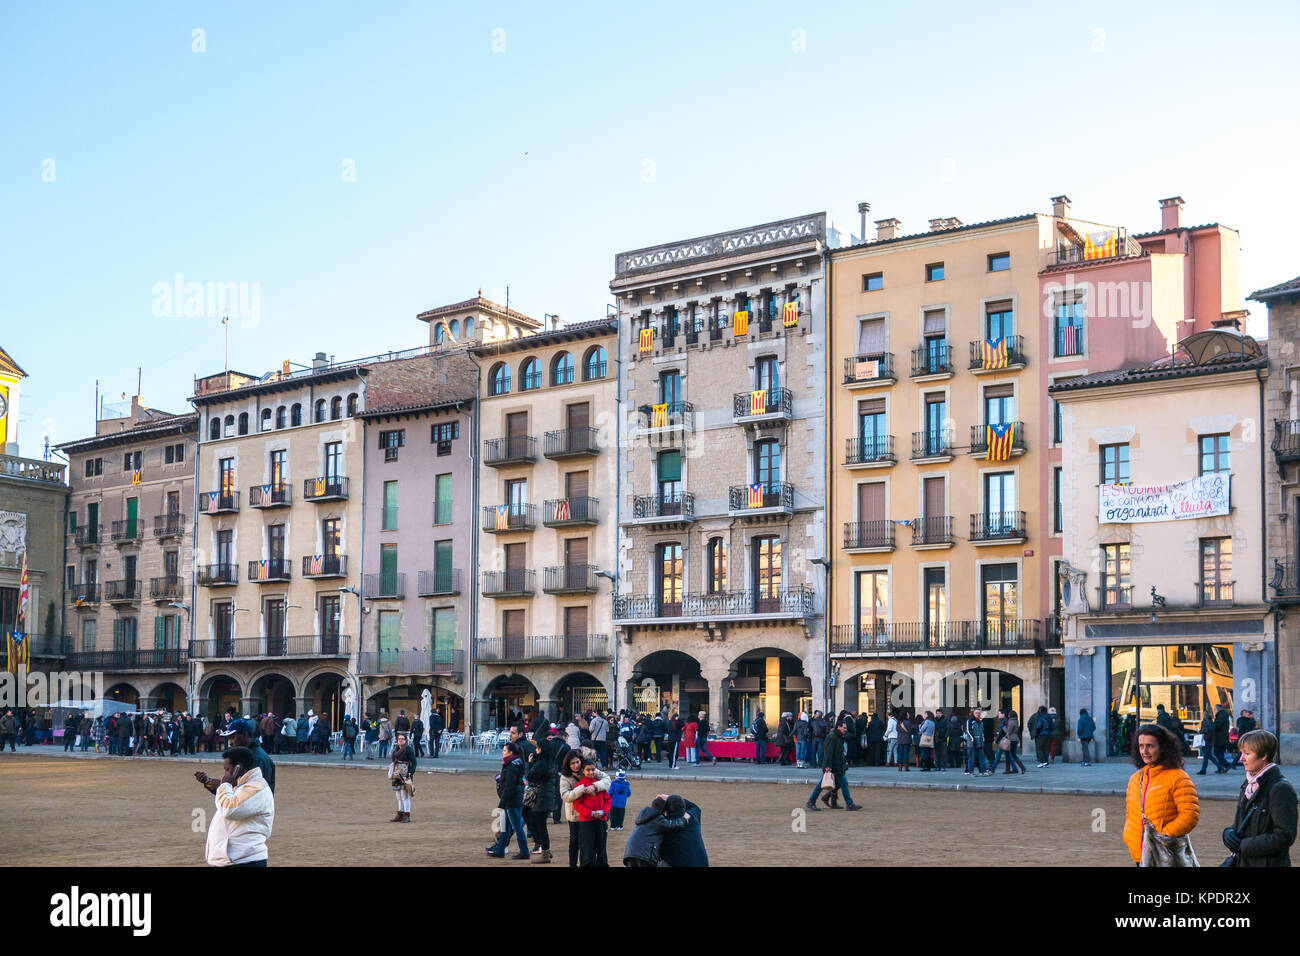 Vic, Spain - December 6, 2013 - View of the main square architecture of Vic, Spain - Stock Image